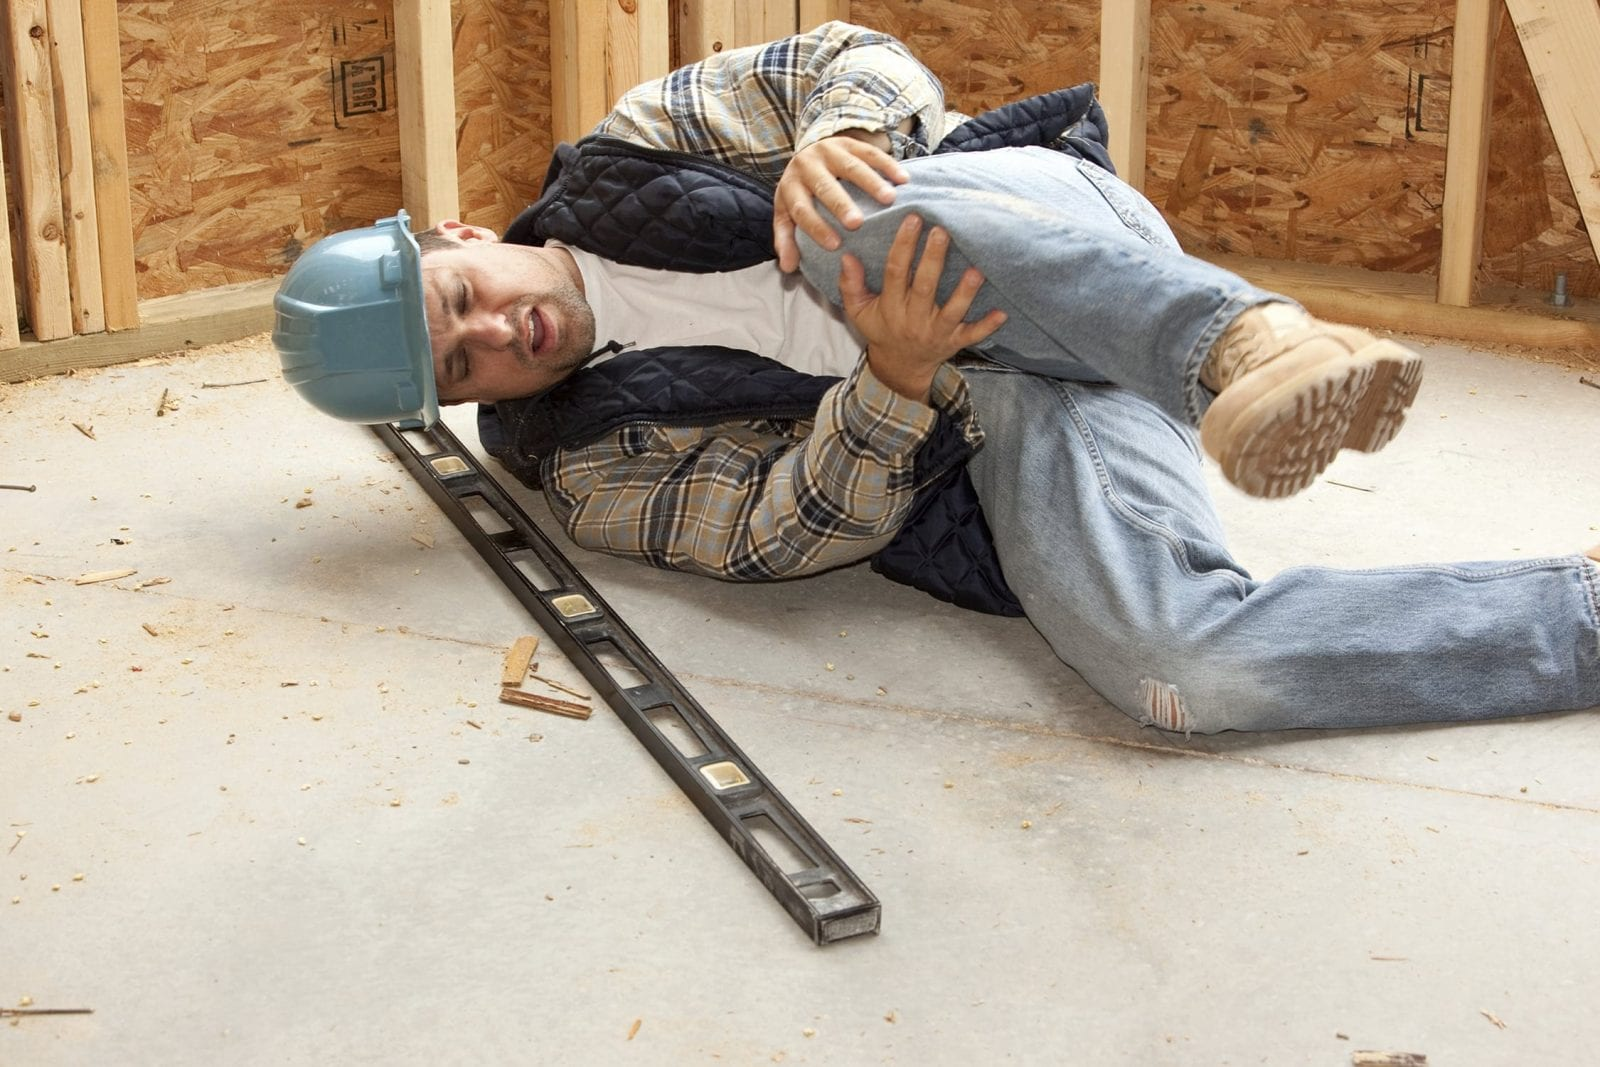 An Odessa Work Injury Lawyer Understands The Impact A Work Injury Has On You And Your Family